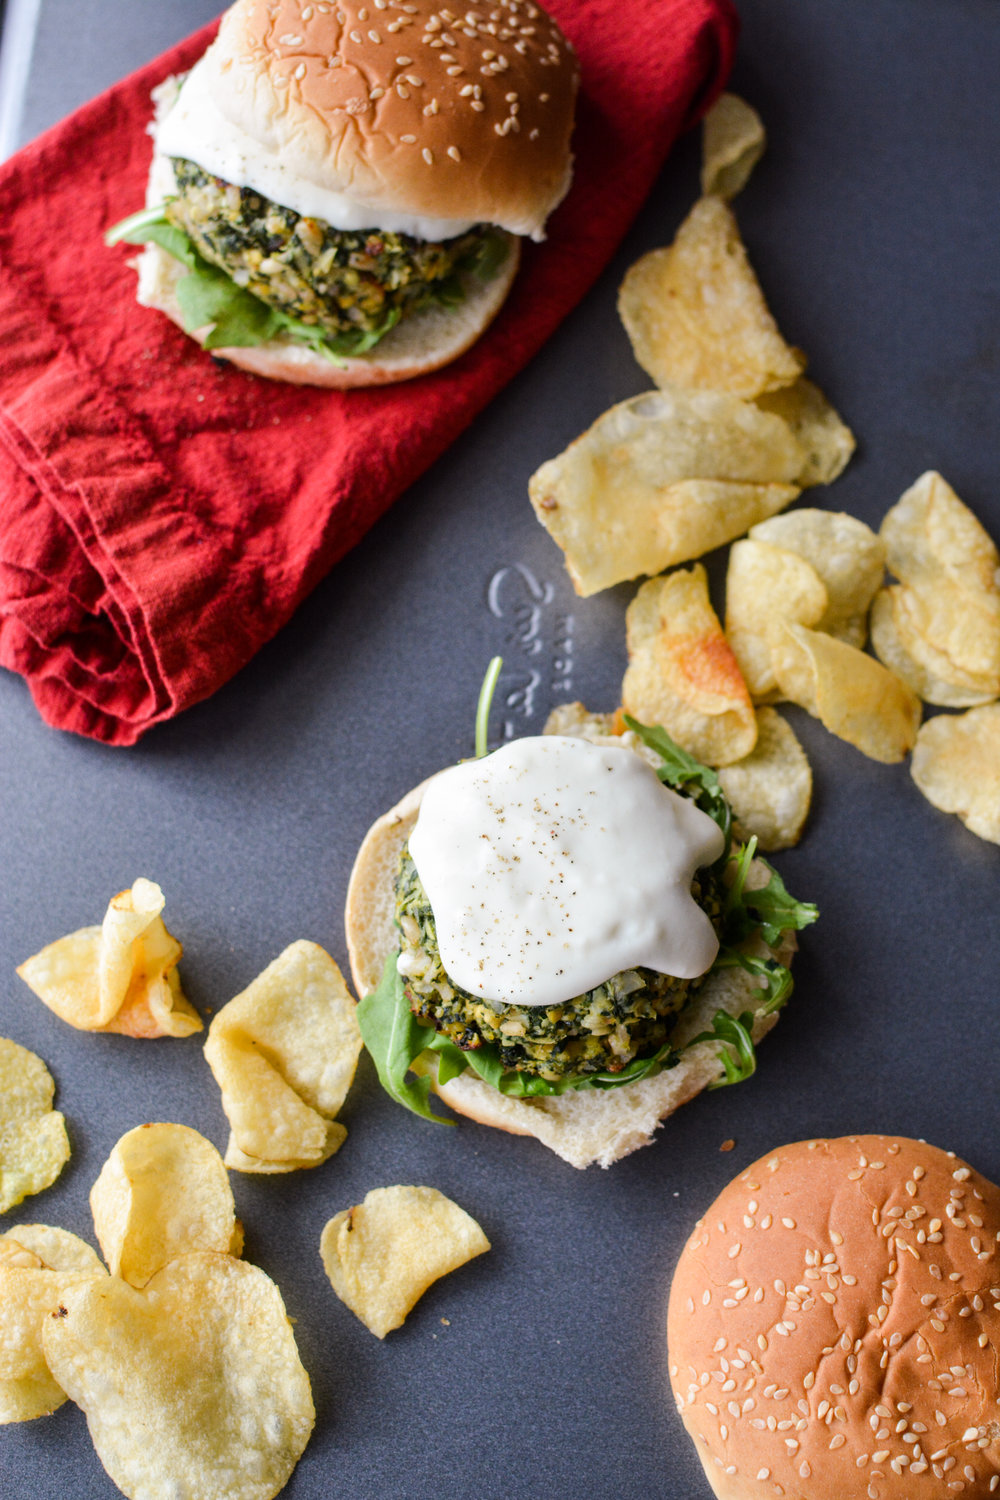 Cream Cheese Stuffed Spinach Artichoke Dip Burgers with White Sauce